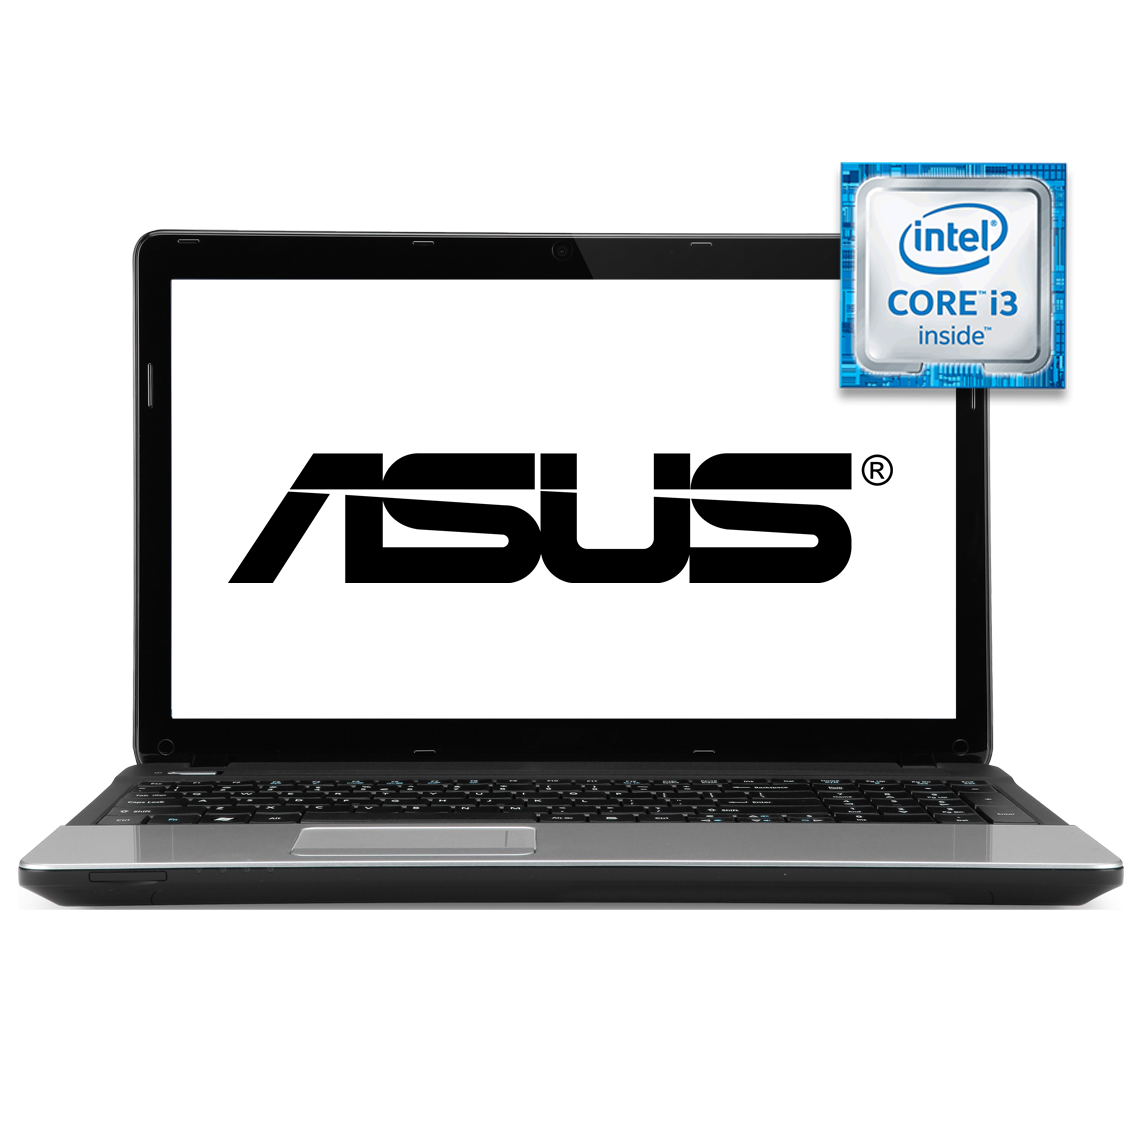 ASUS - 17.3 inch Core i3 2nd Gen